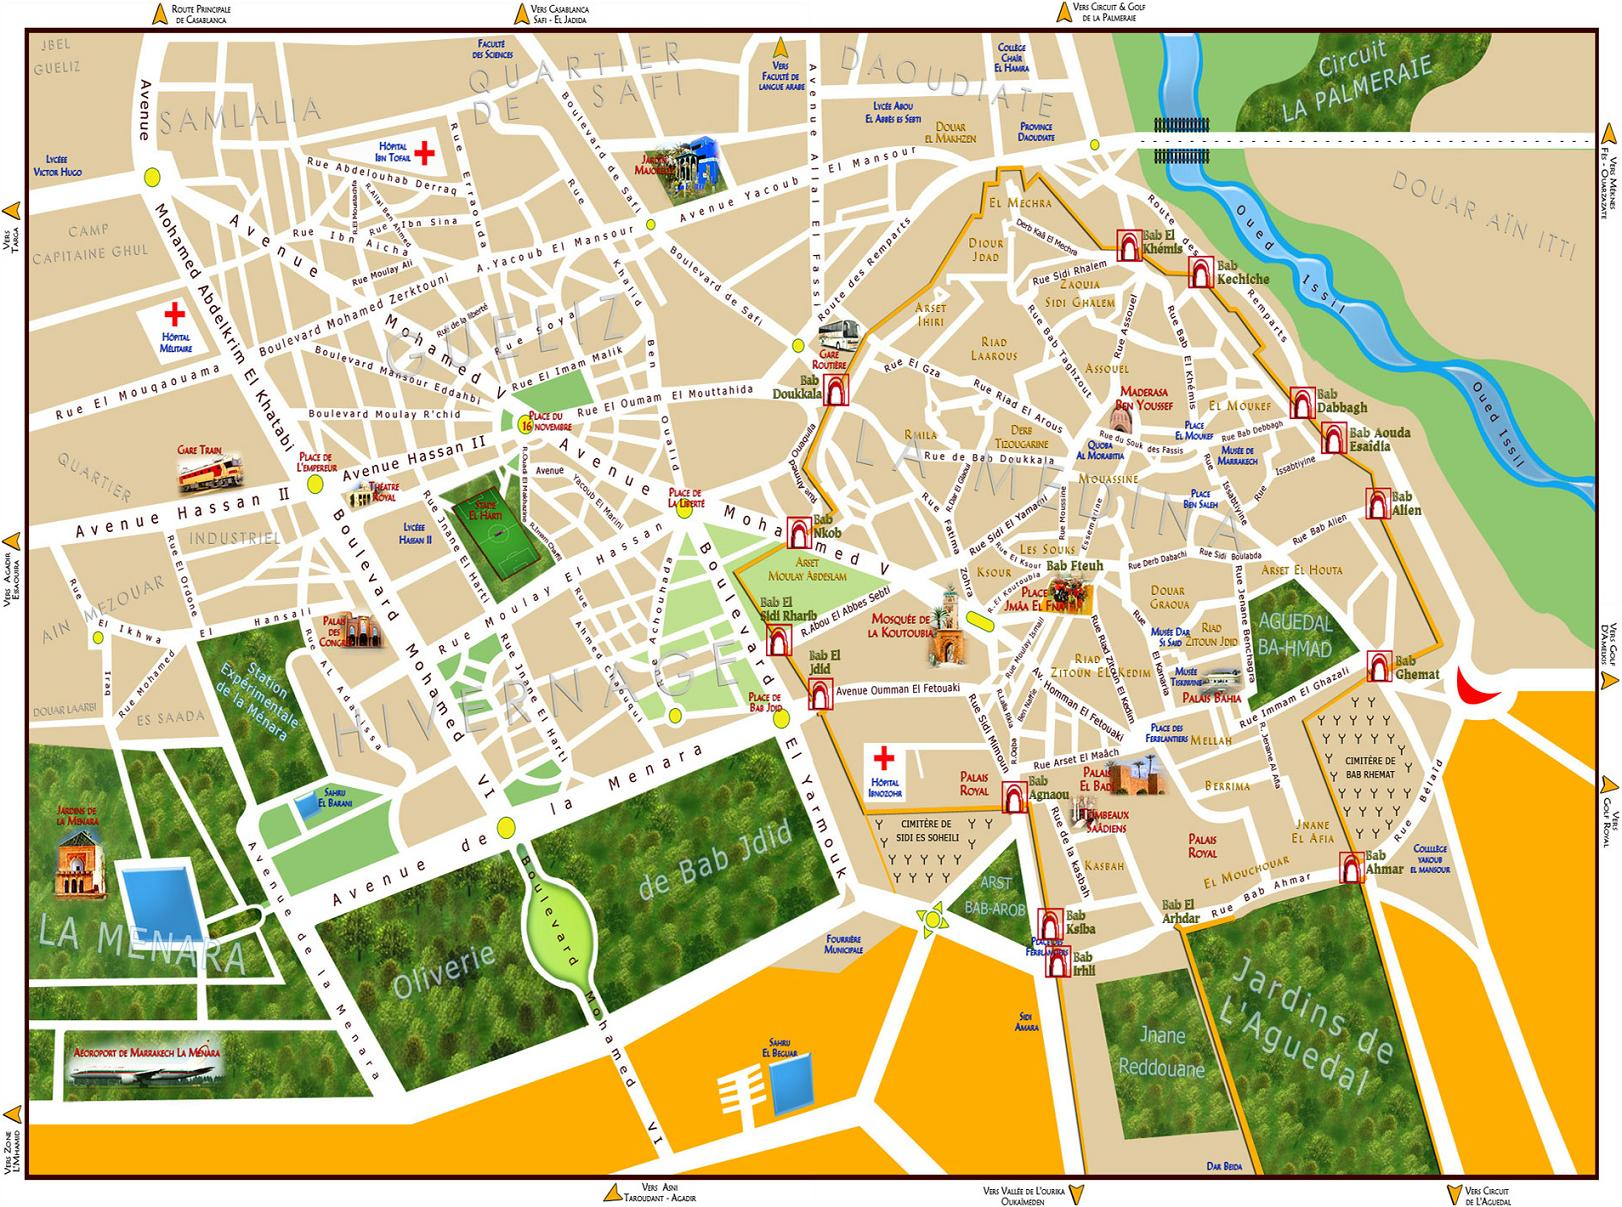 Maps Of Marrakech To Download Or Print Bus Map Souks Train City